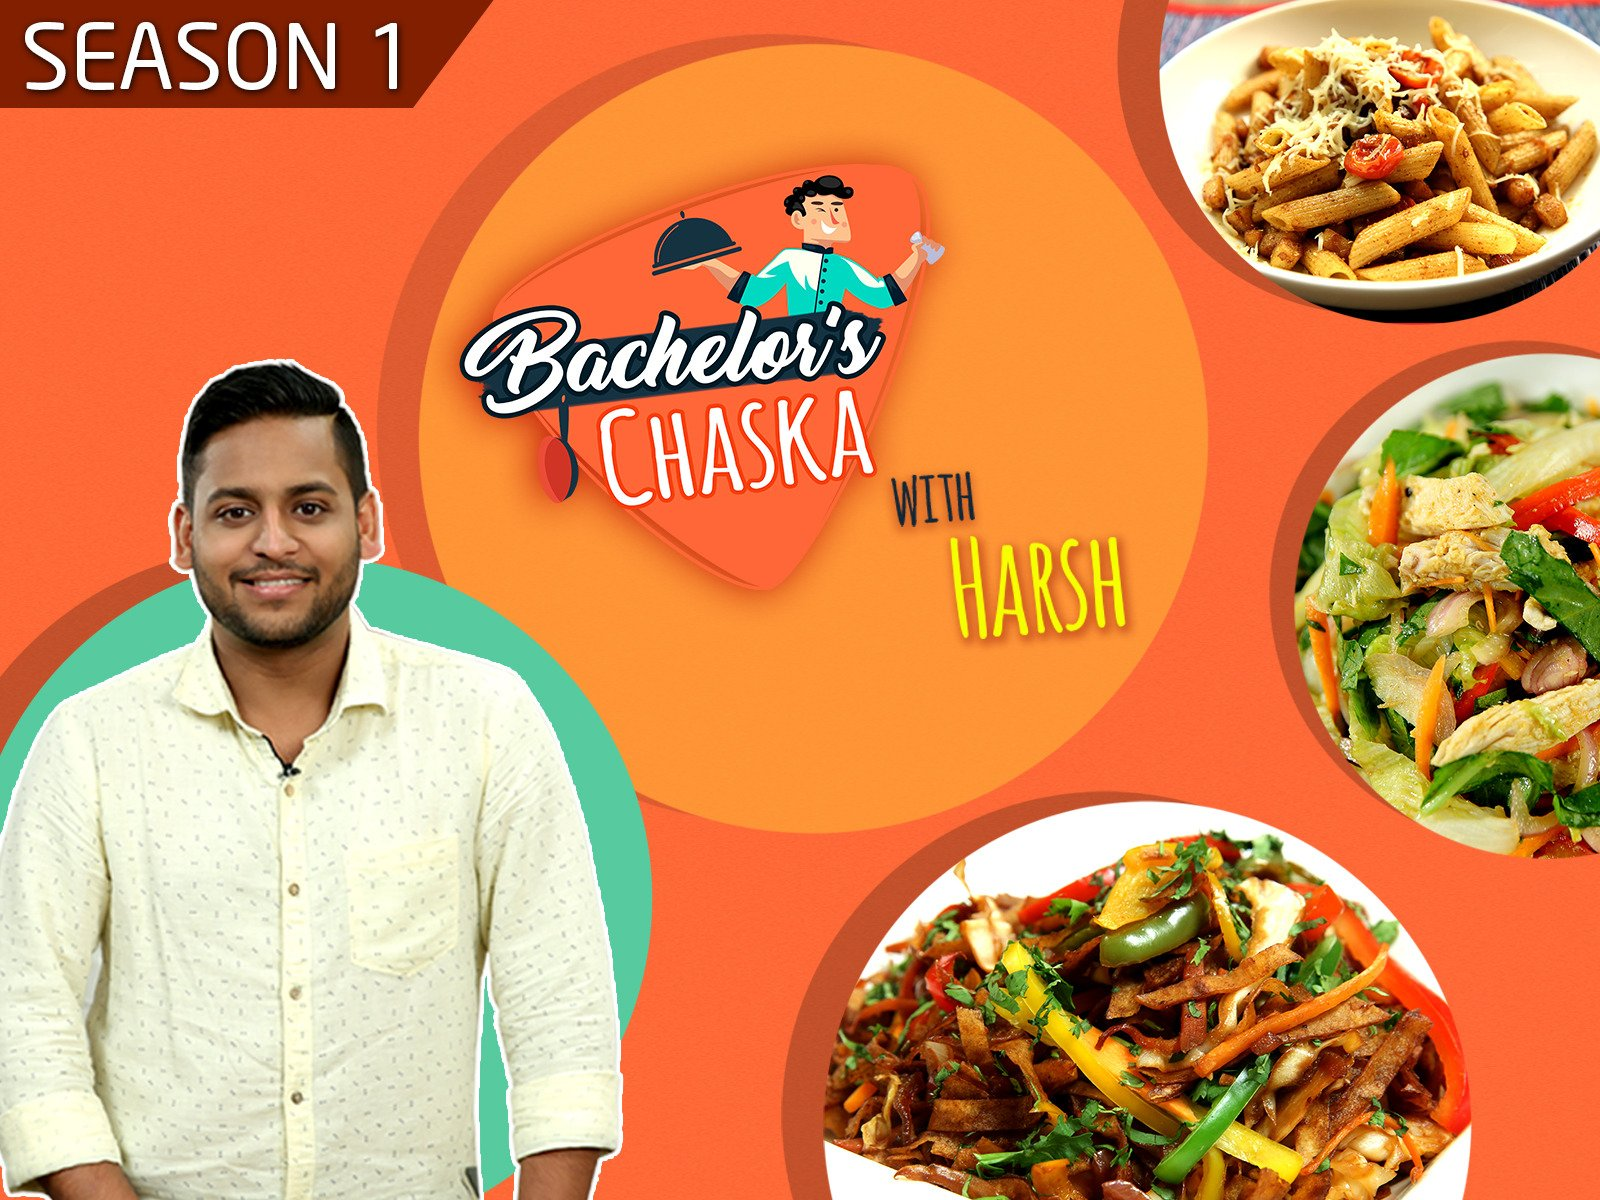 Bachelor's Chaska With Harsh - Season 1